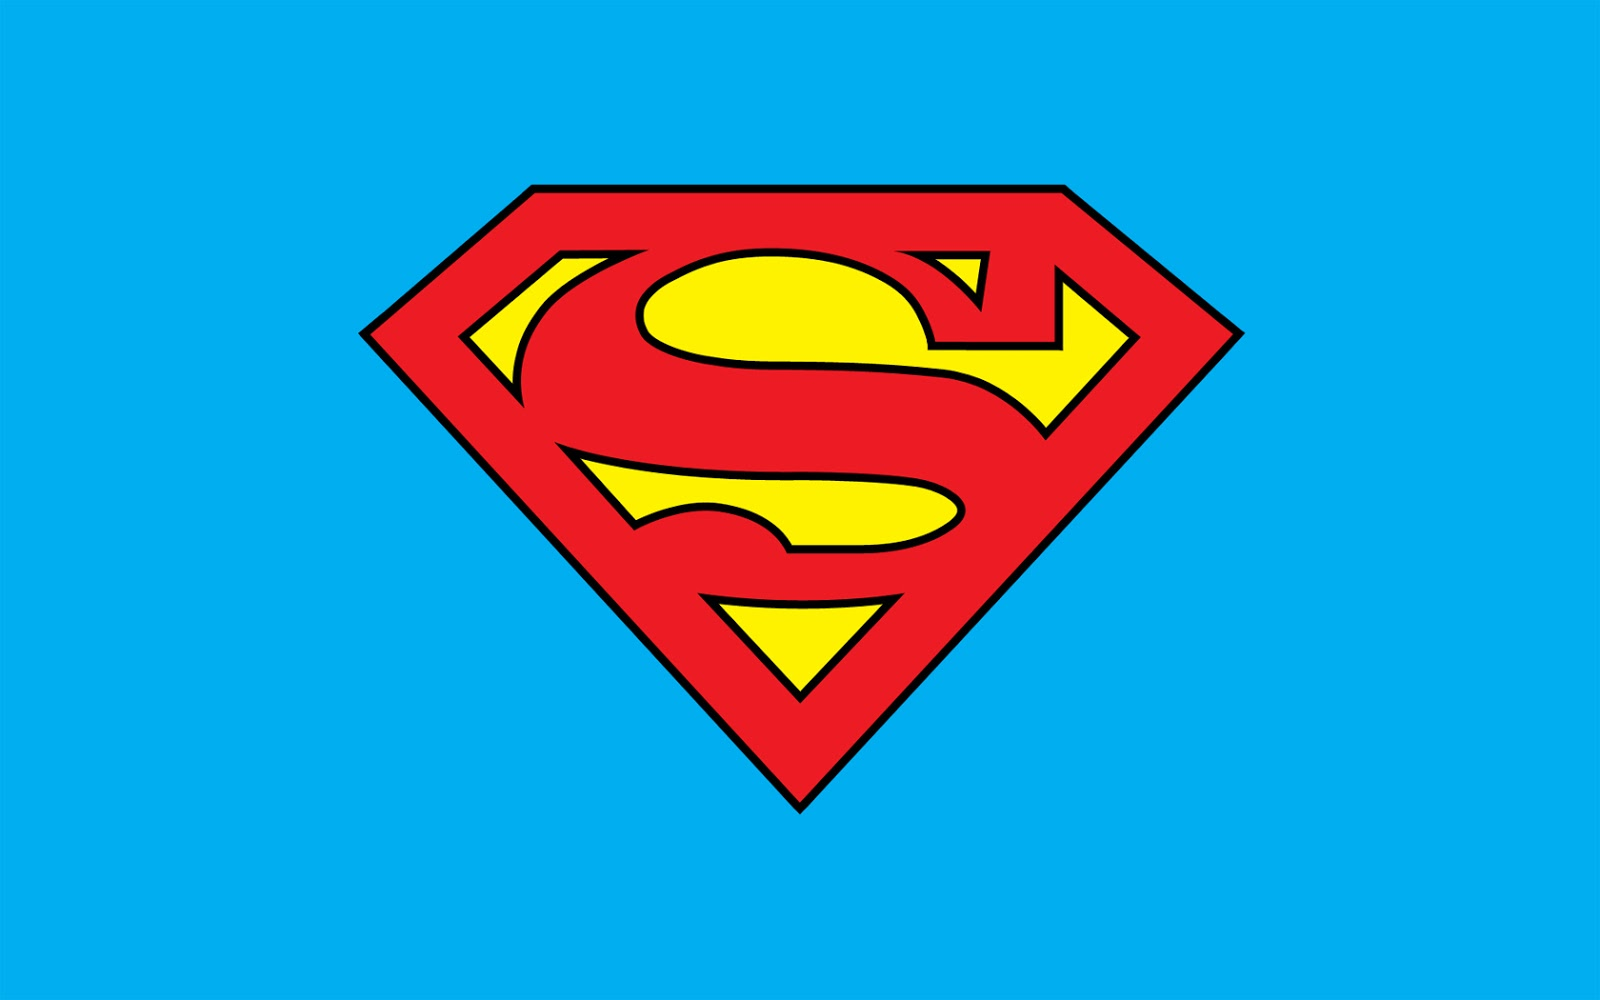 superman logo by benokil - photo #11